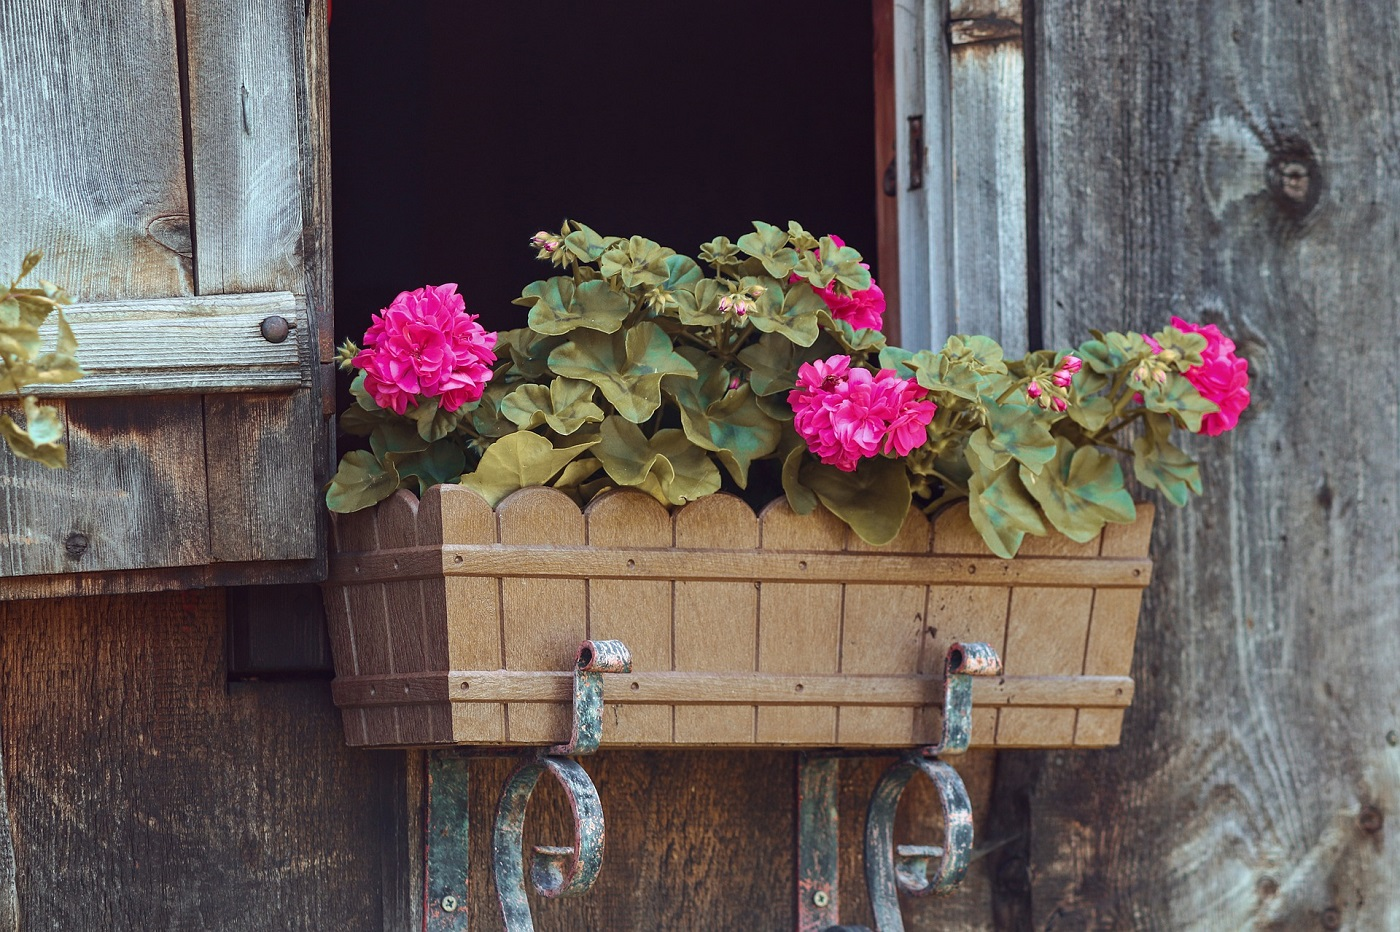 Flower box inn window holding pink carnations. Image from Pixabay.